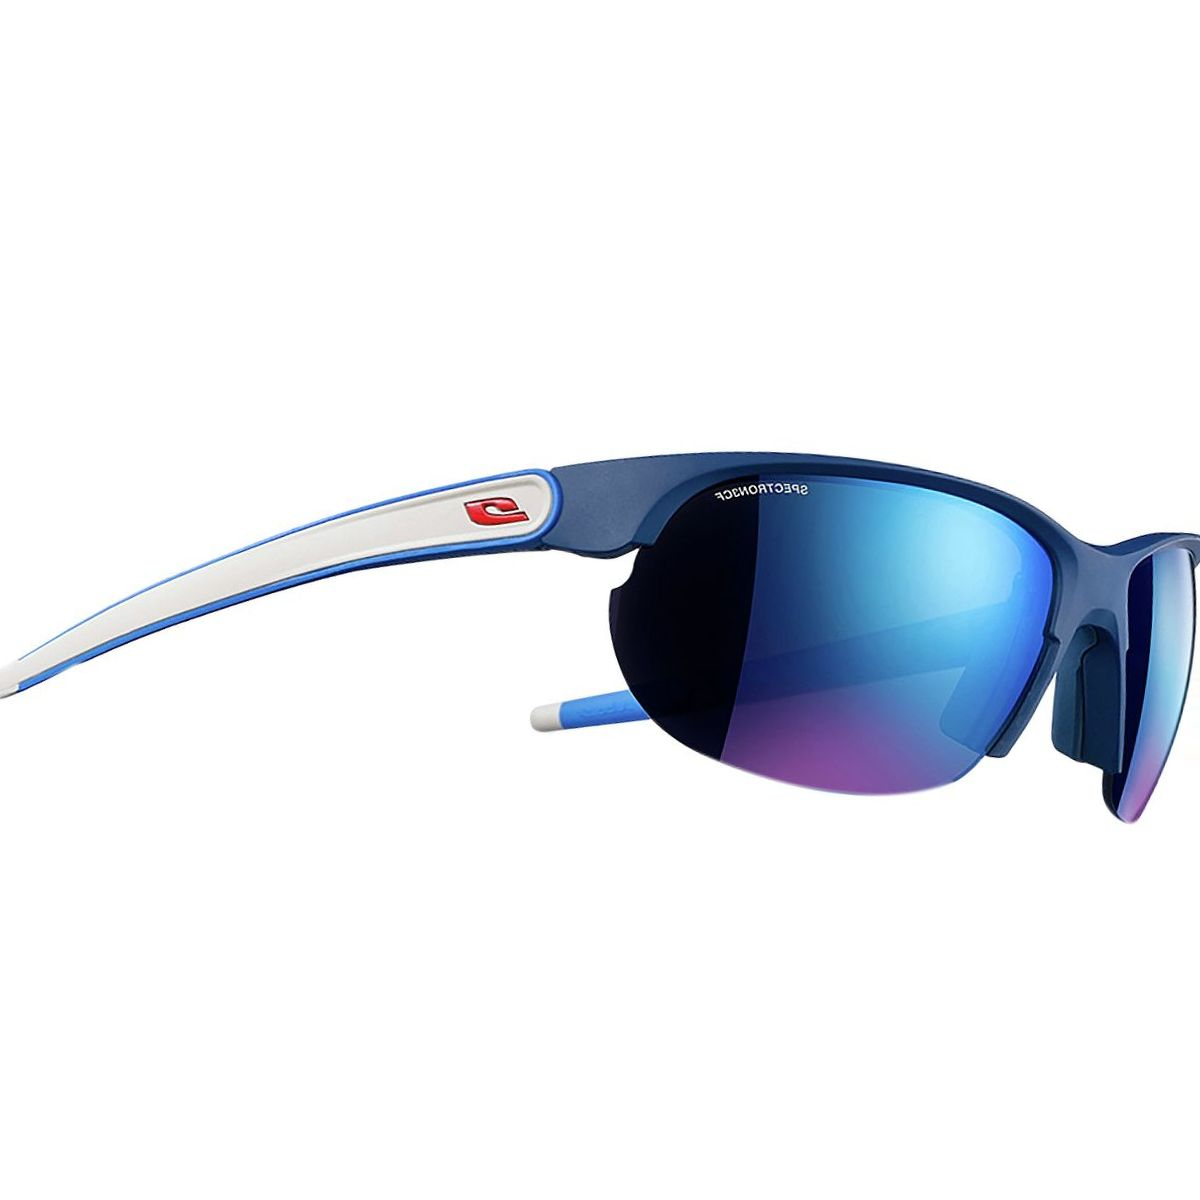 Julbo Breeze Spectron 3 CF Sunglasses - Women's